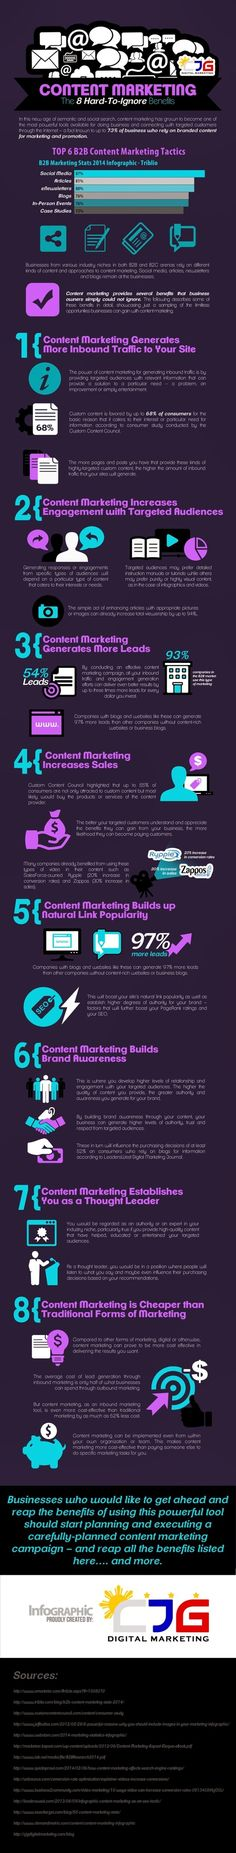 Content Marketing: 8 Hard-to-ignore Benefits #infographic #contentstrategy #marketing #in